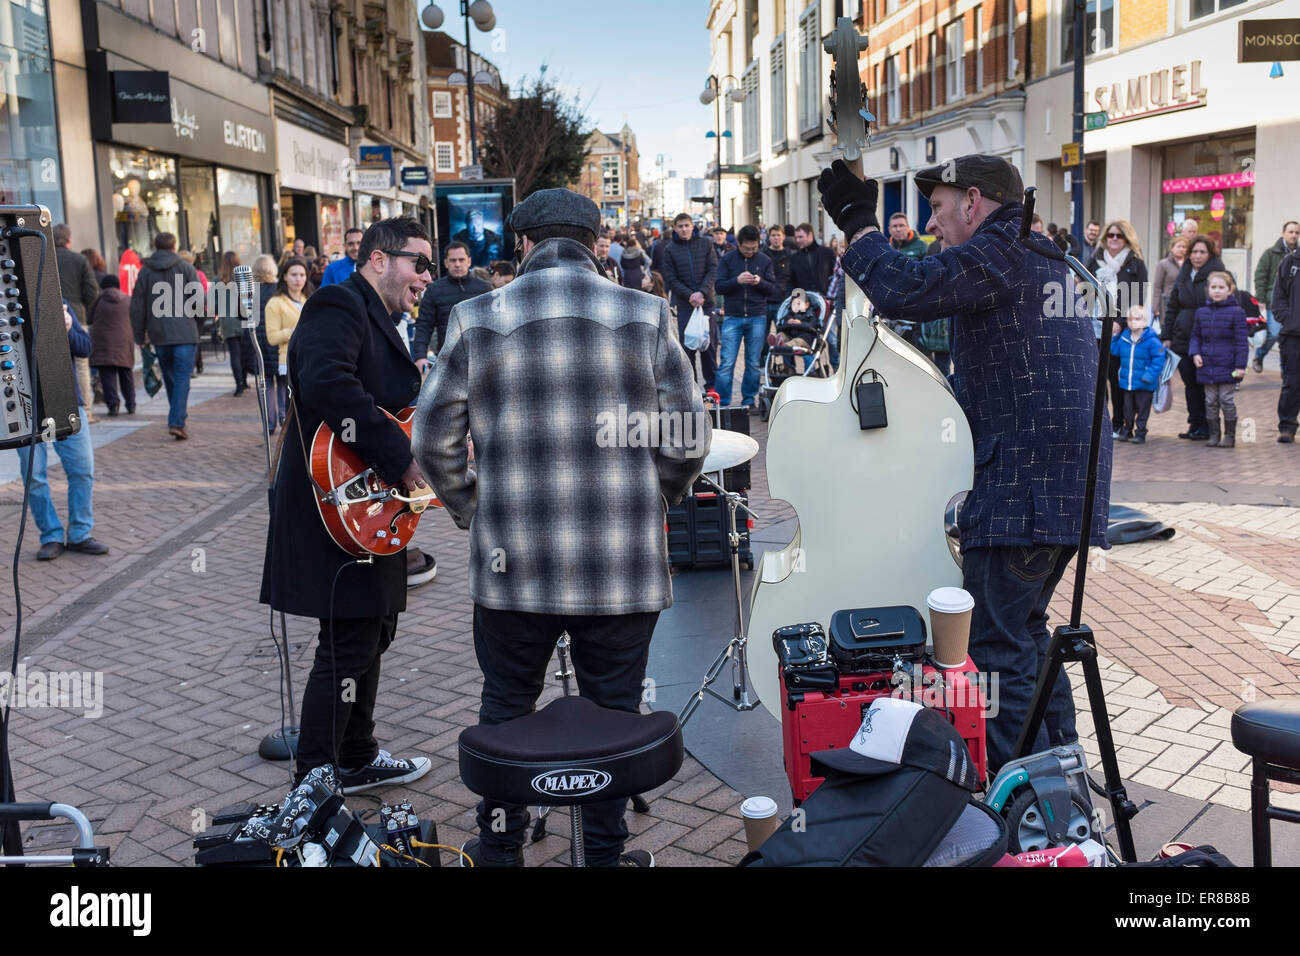 Buskers singing and playing musical instruments, KIngston upon Thames, Surrey, UK Stock Photo